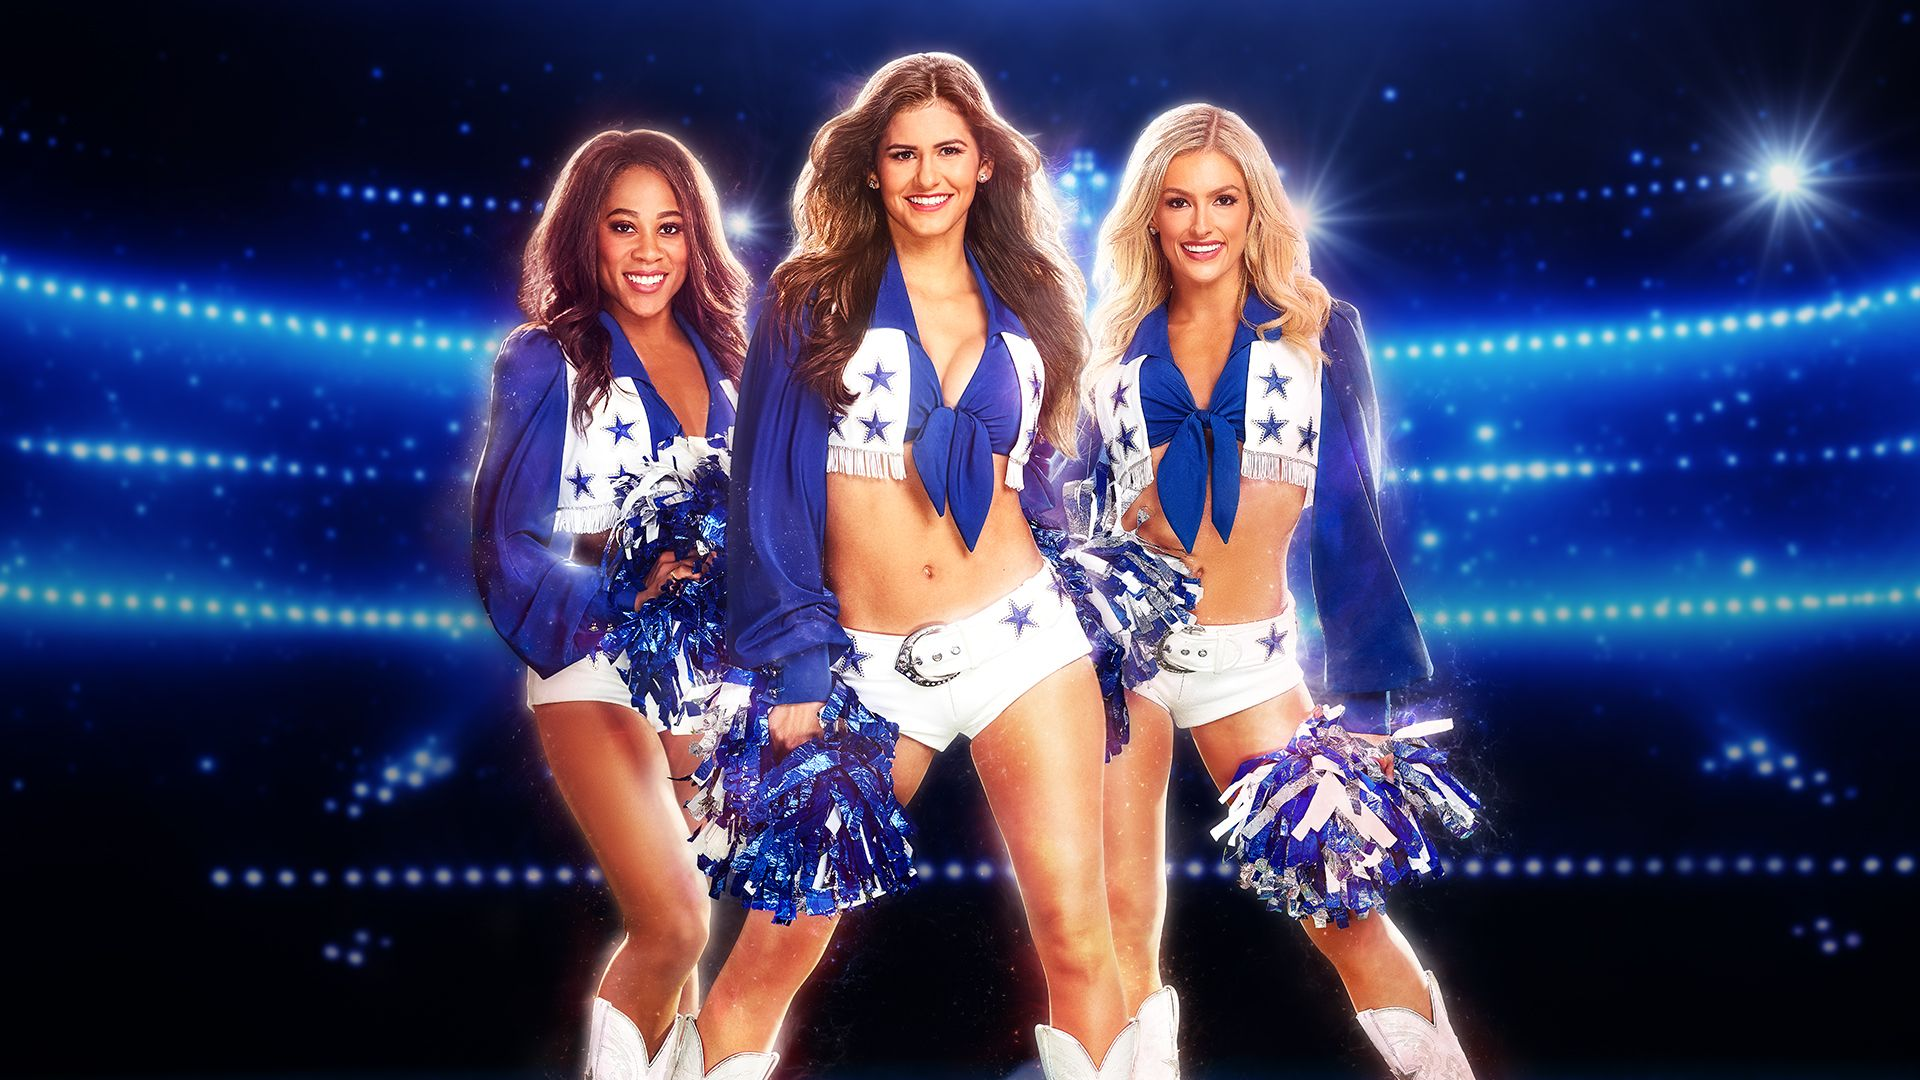 Get Out Tlc Tv Show Full Episodes dallas cowboys cheerleaders: making the team   season 14